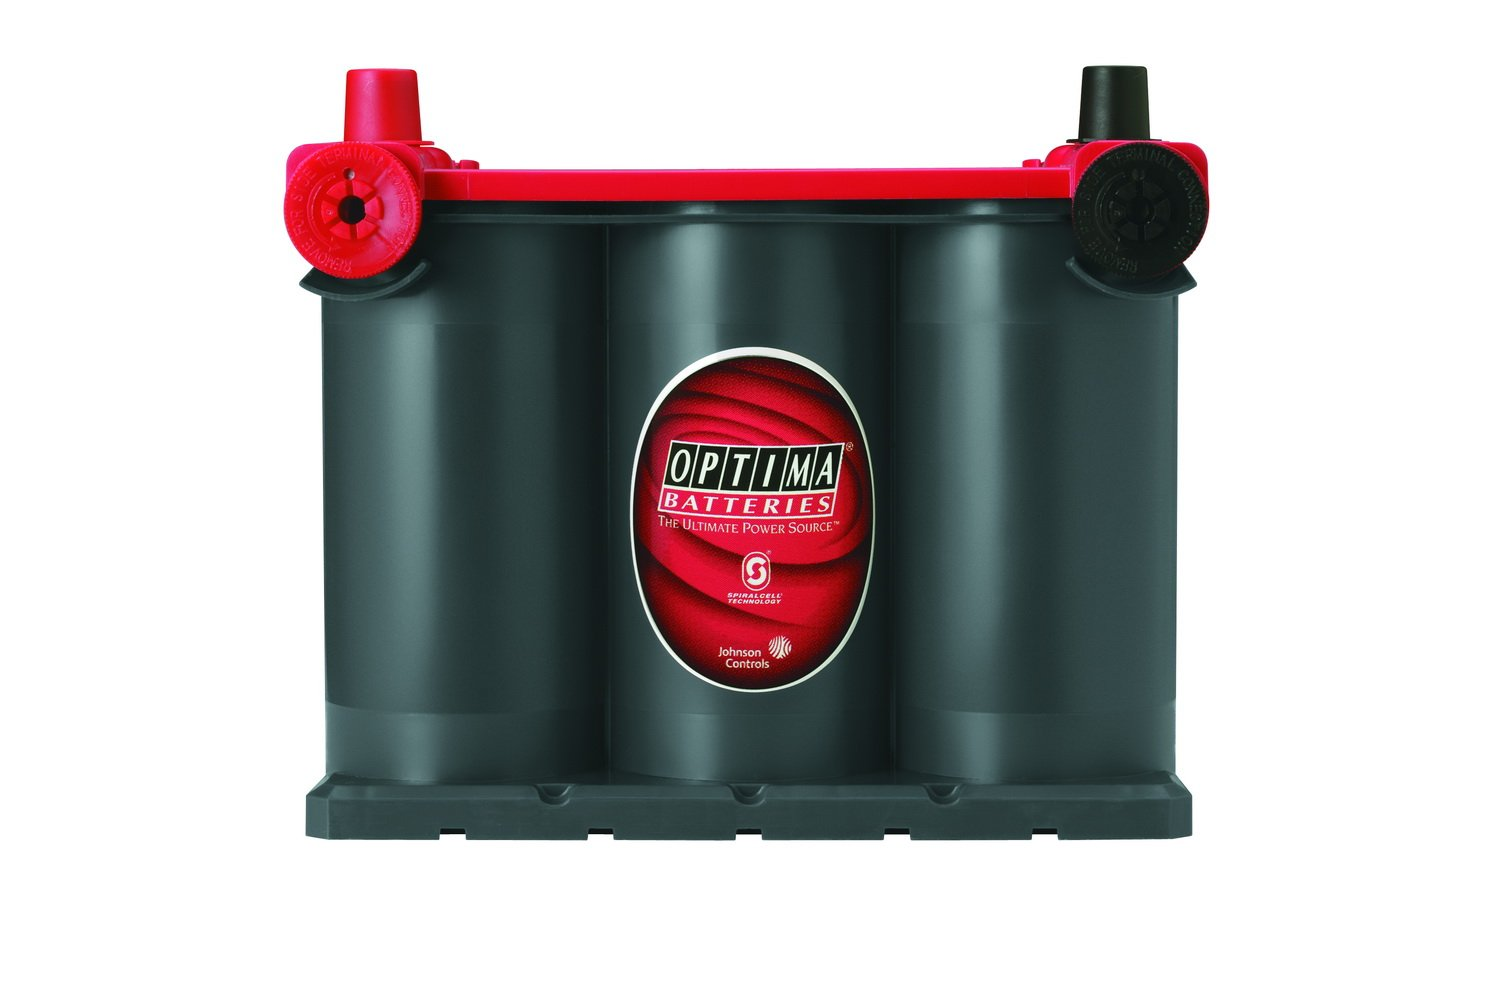 Optima Batteries 8022-091 75/25 RedTop Starting Battery by Optima (Image #4)